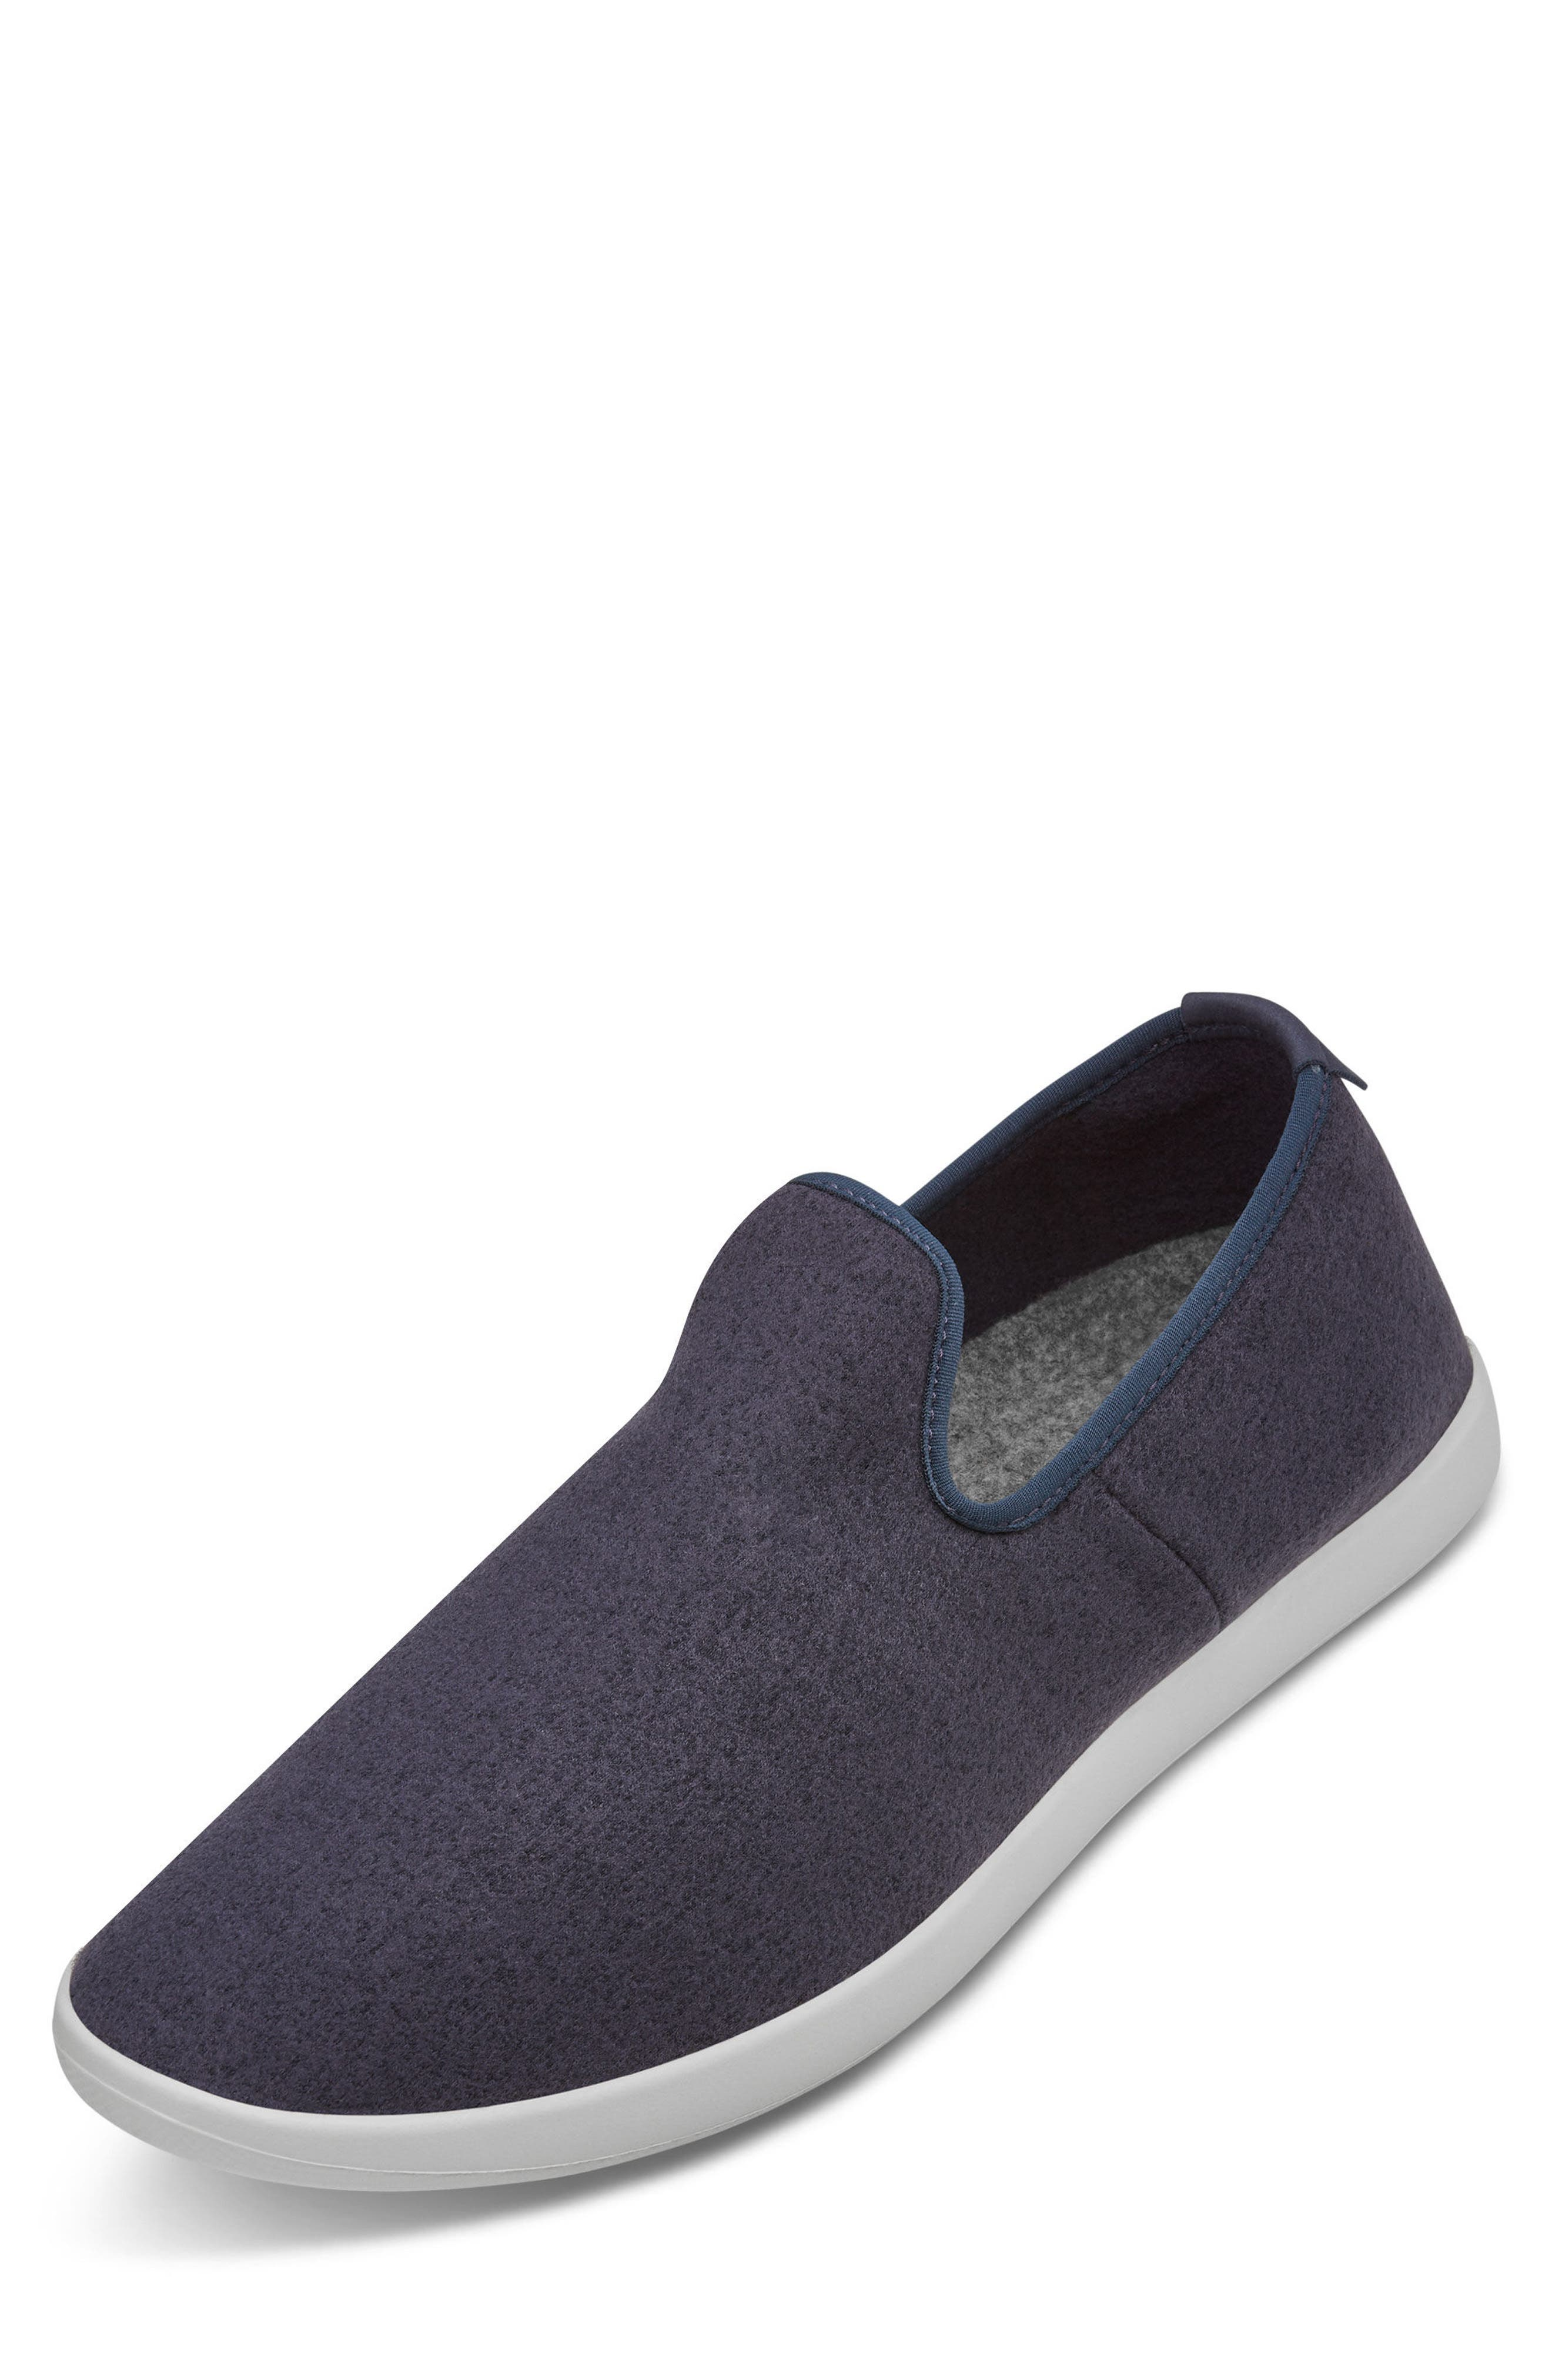 Wool Lounger,                             Main thumbnail 1, color,                             Midnight